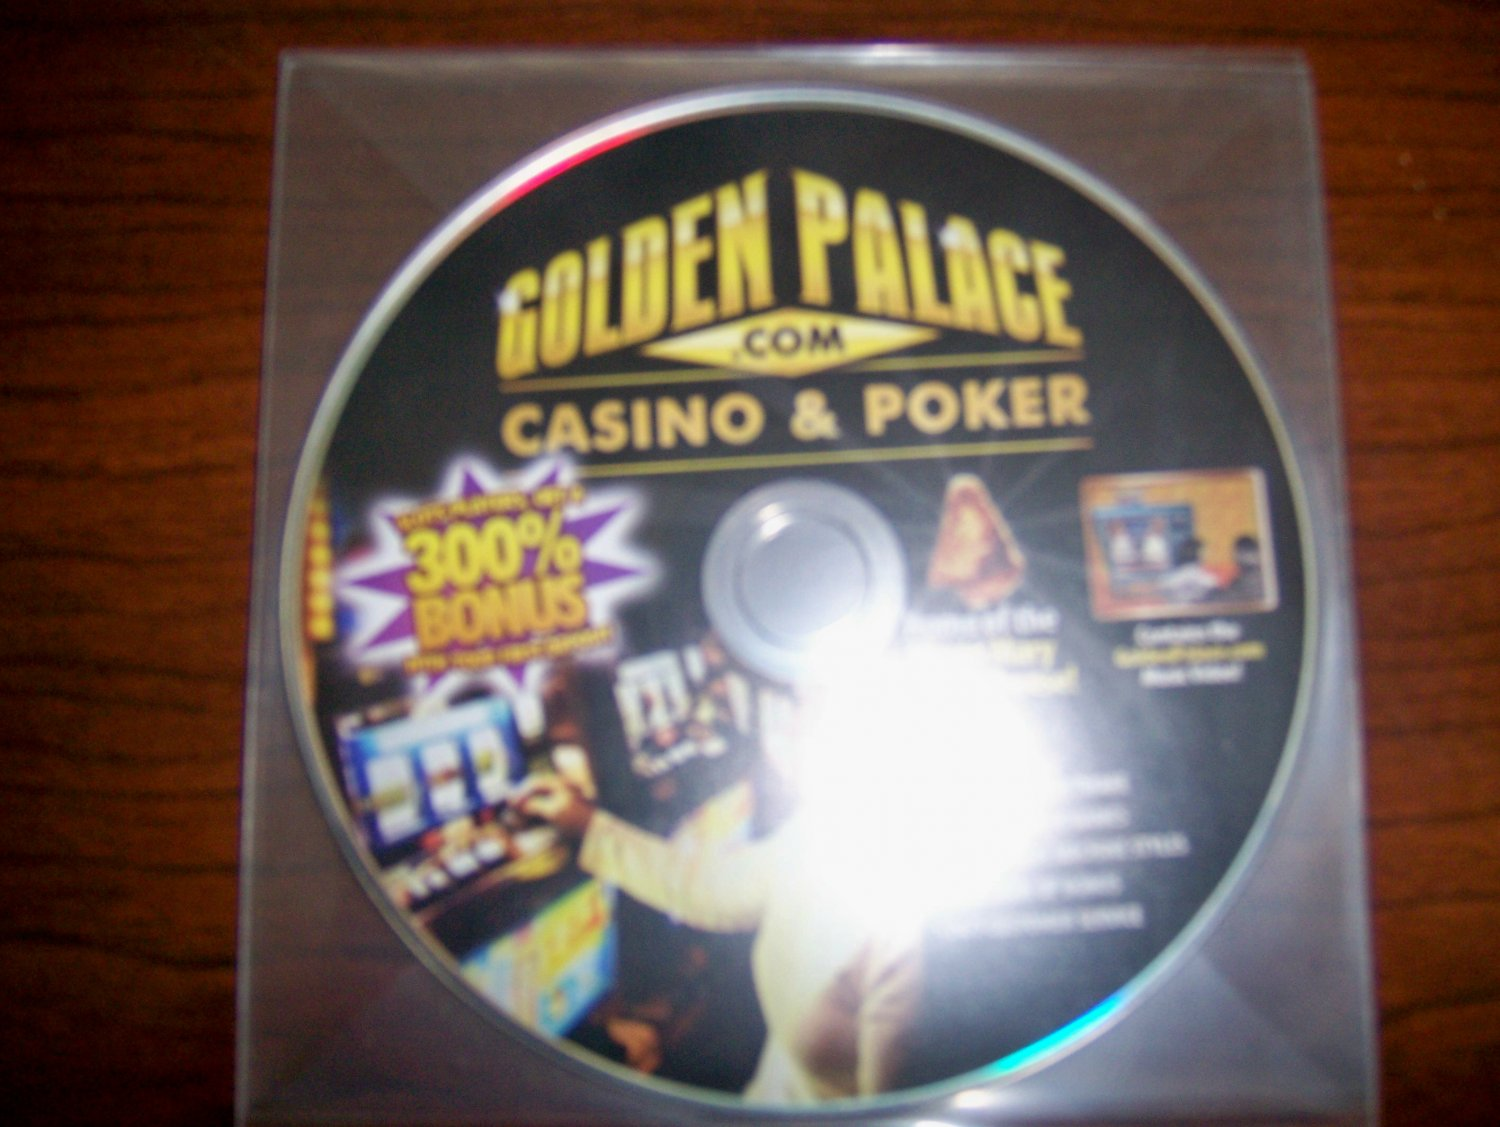 Golden Palace Casino & Poker Video  BNK952